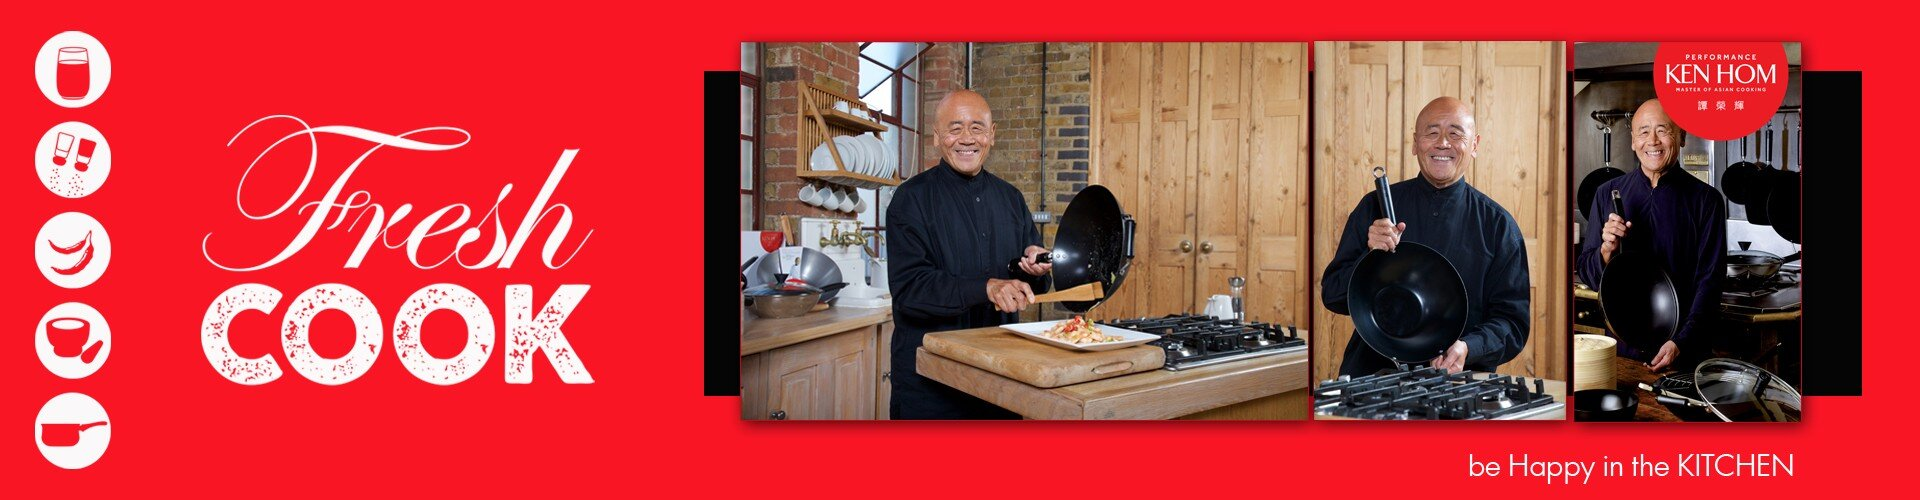 fresh cook ken hom